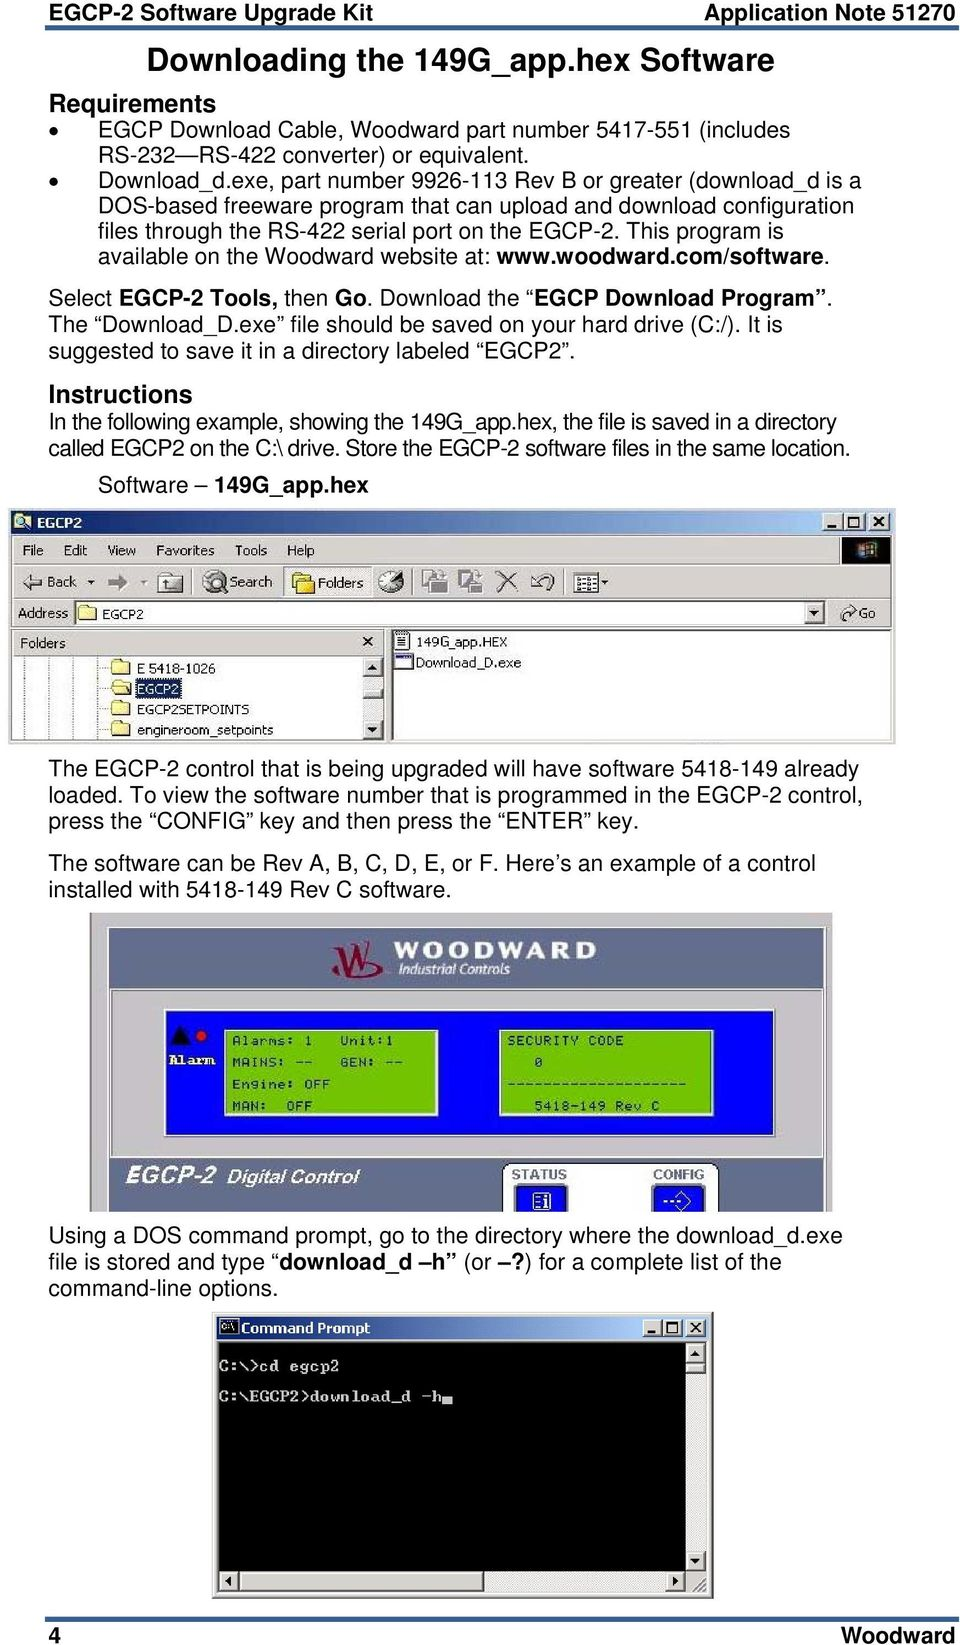 exe, part number 9926-113 Rev B or greater (download_d is a DOS-based freeware program that can upload and download configuration files through the RS-422 serial port on the EGCP-2.